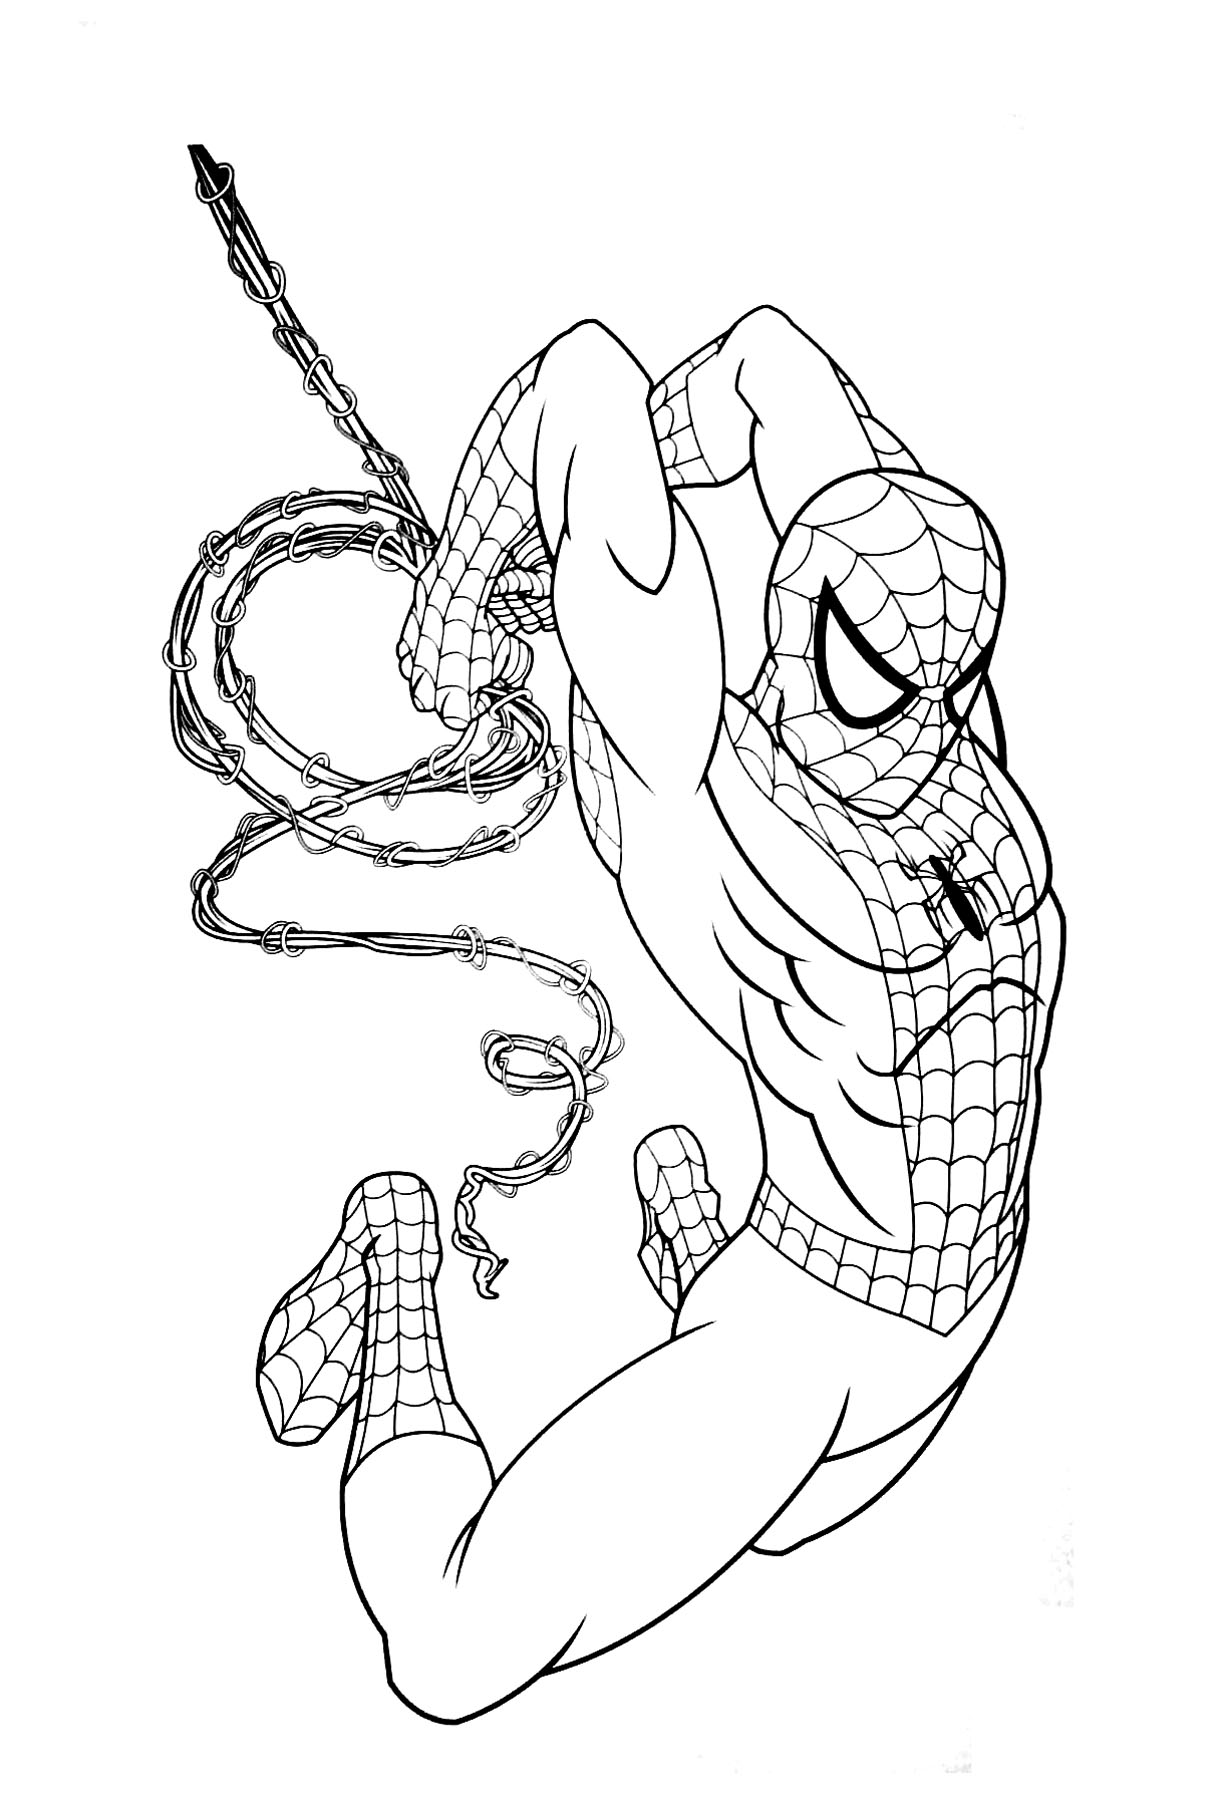 coloring spiderman drawing easy spiderman coloring pages download free coloring sheets spiderman coloring easy drawing